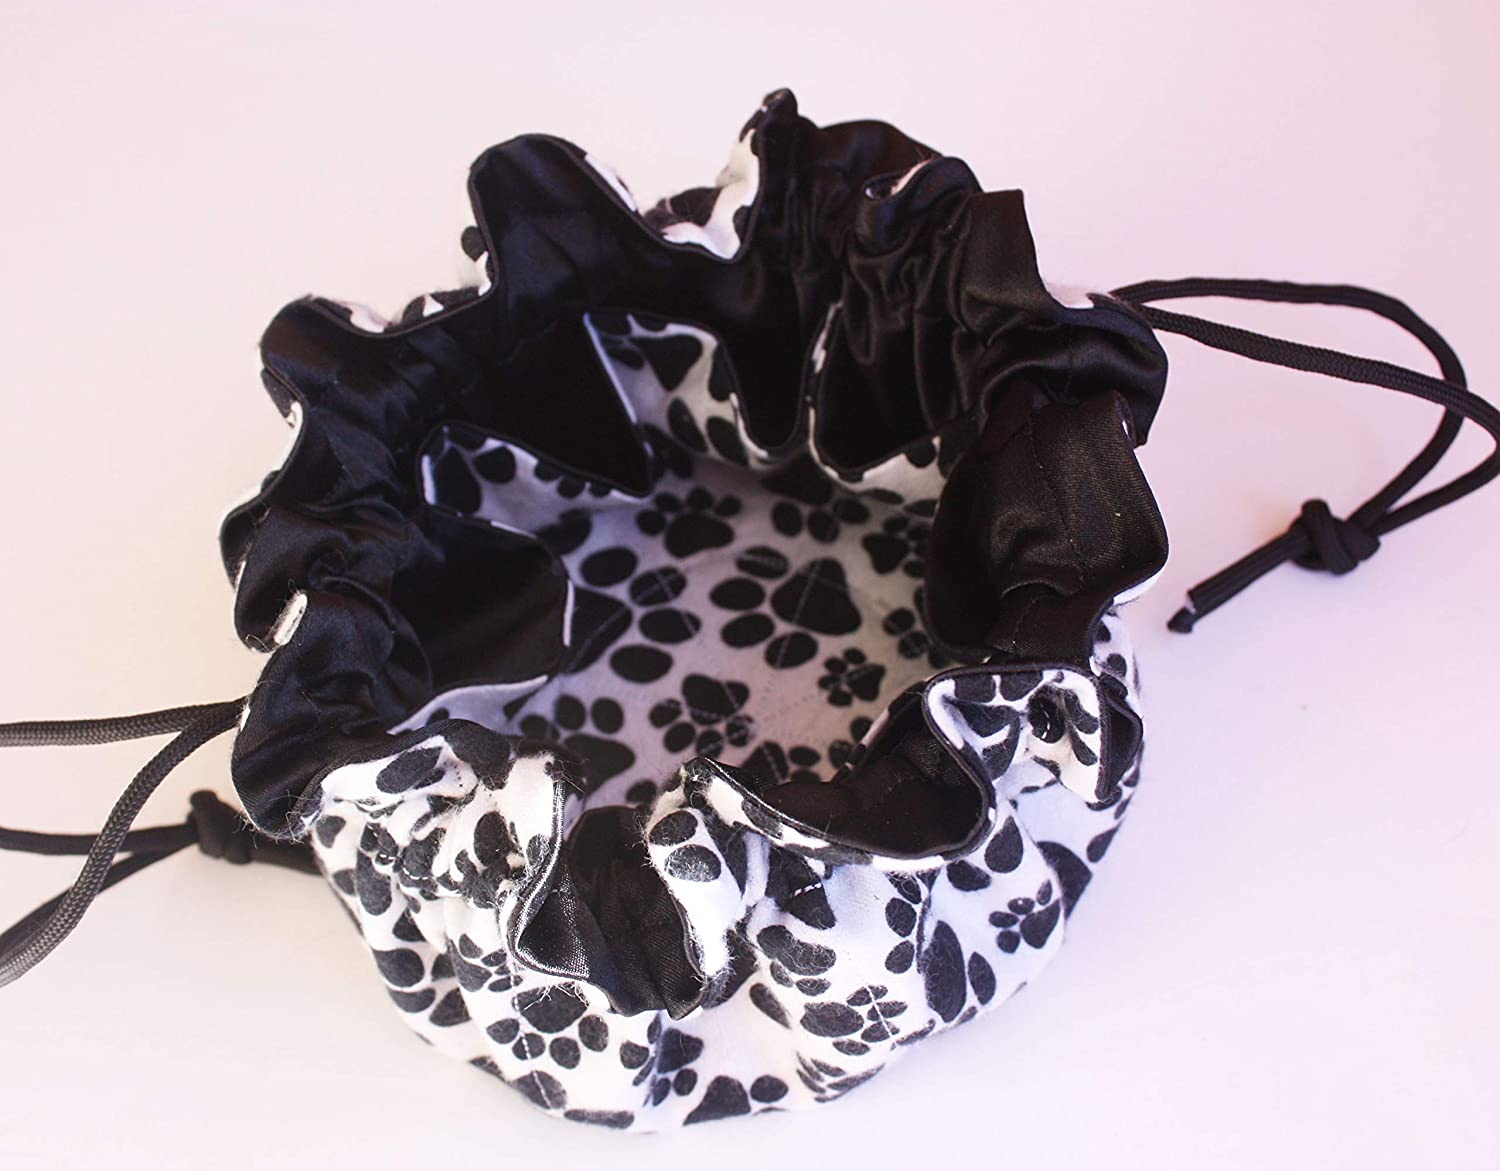 medications hair accessories pet treats or other small items. Perfect for travel and organizing jewelry A Black /& White Paw Print Design eight pocket Utility Pouch